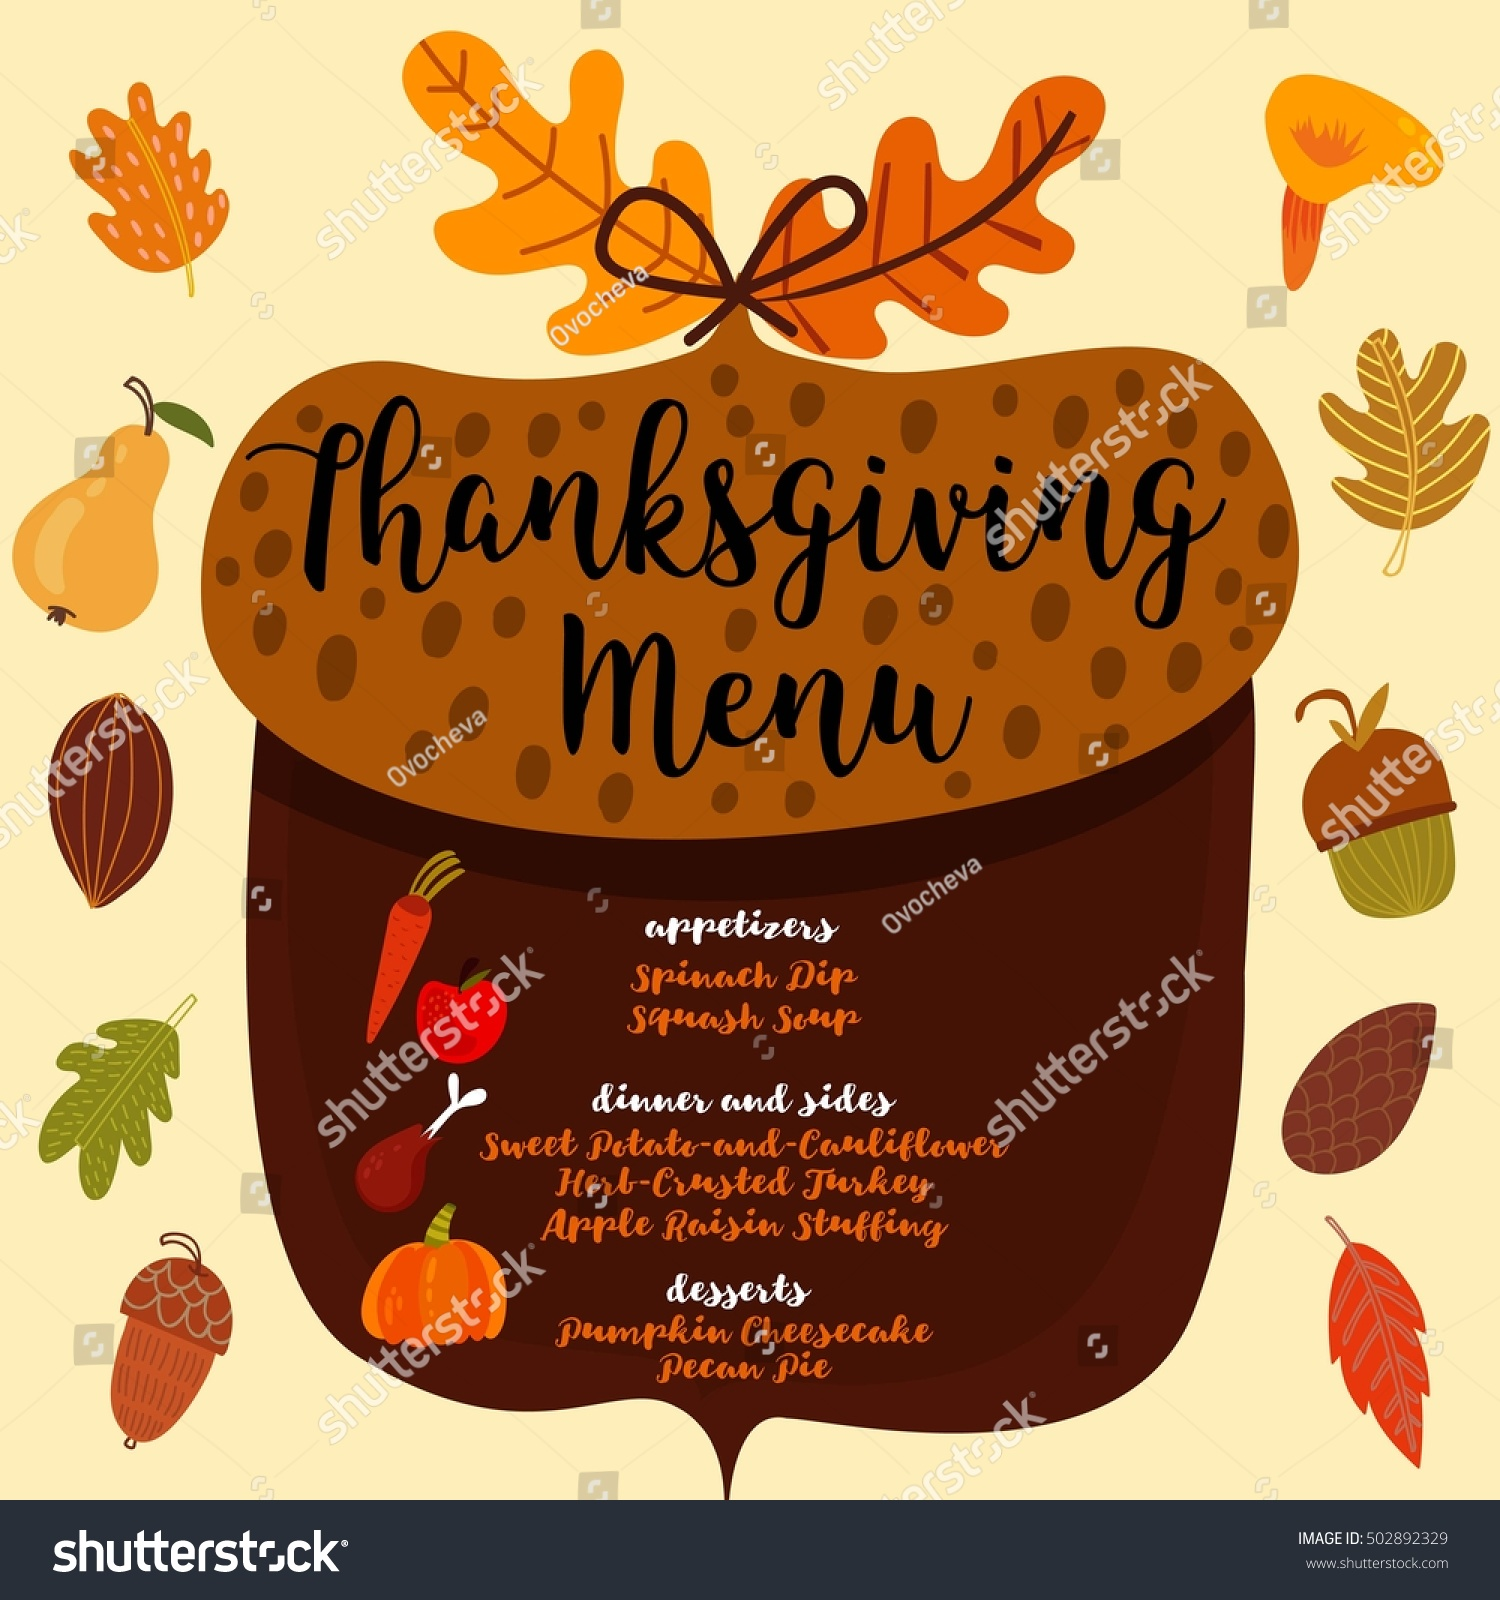 Thanksgiving Menu Invitation Design Thanksgiving Dinner Stock ...